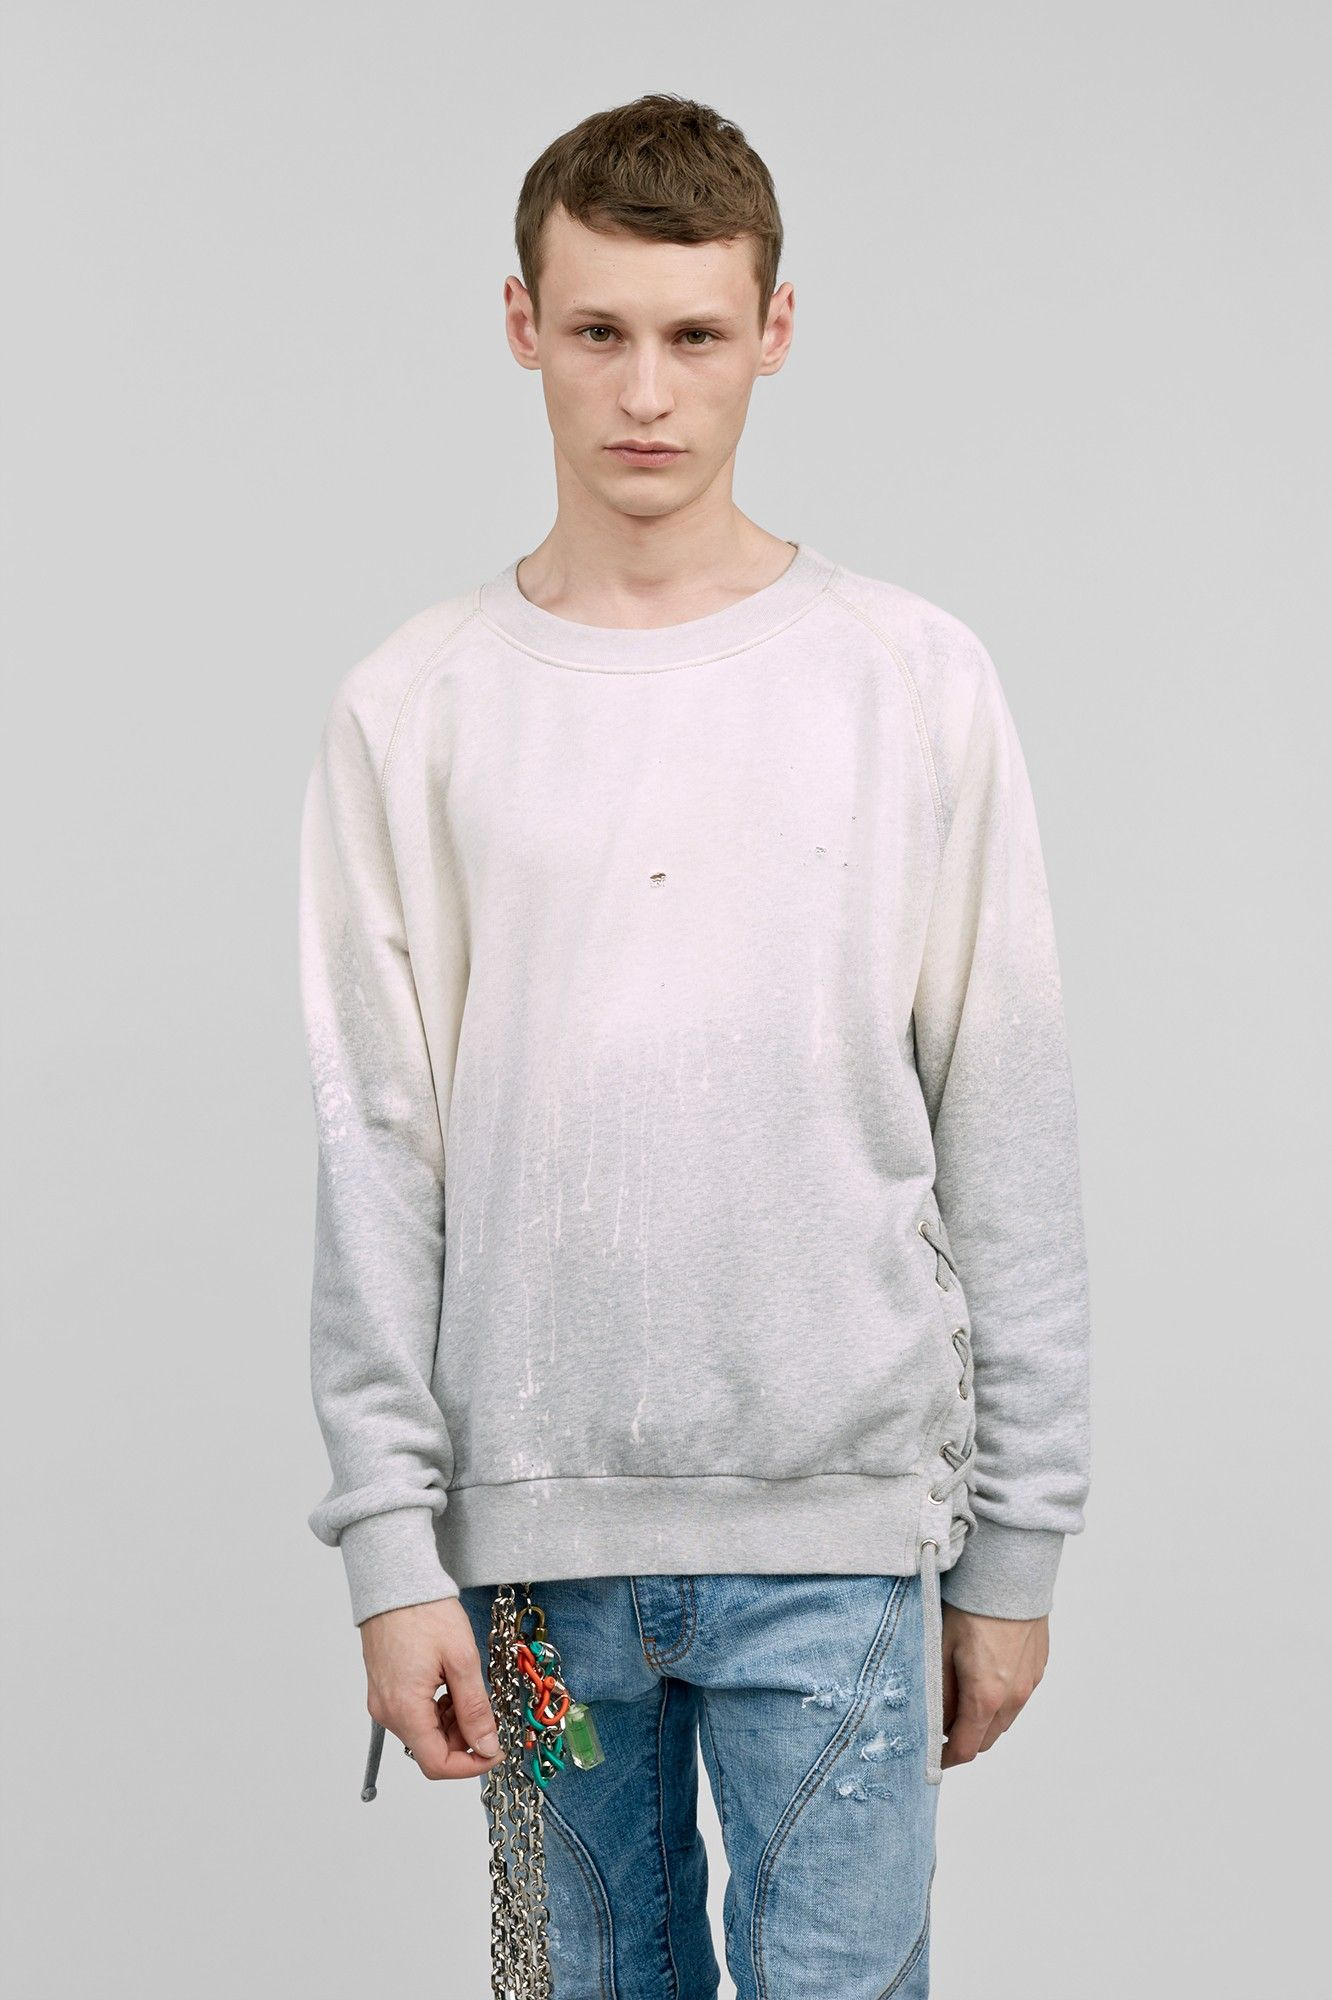 Faded sweater with lace up side  05c0195f3